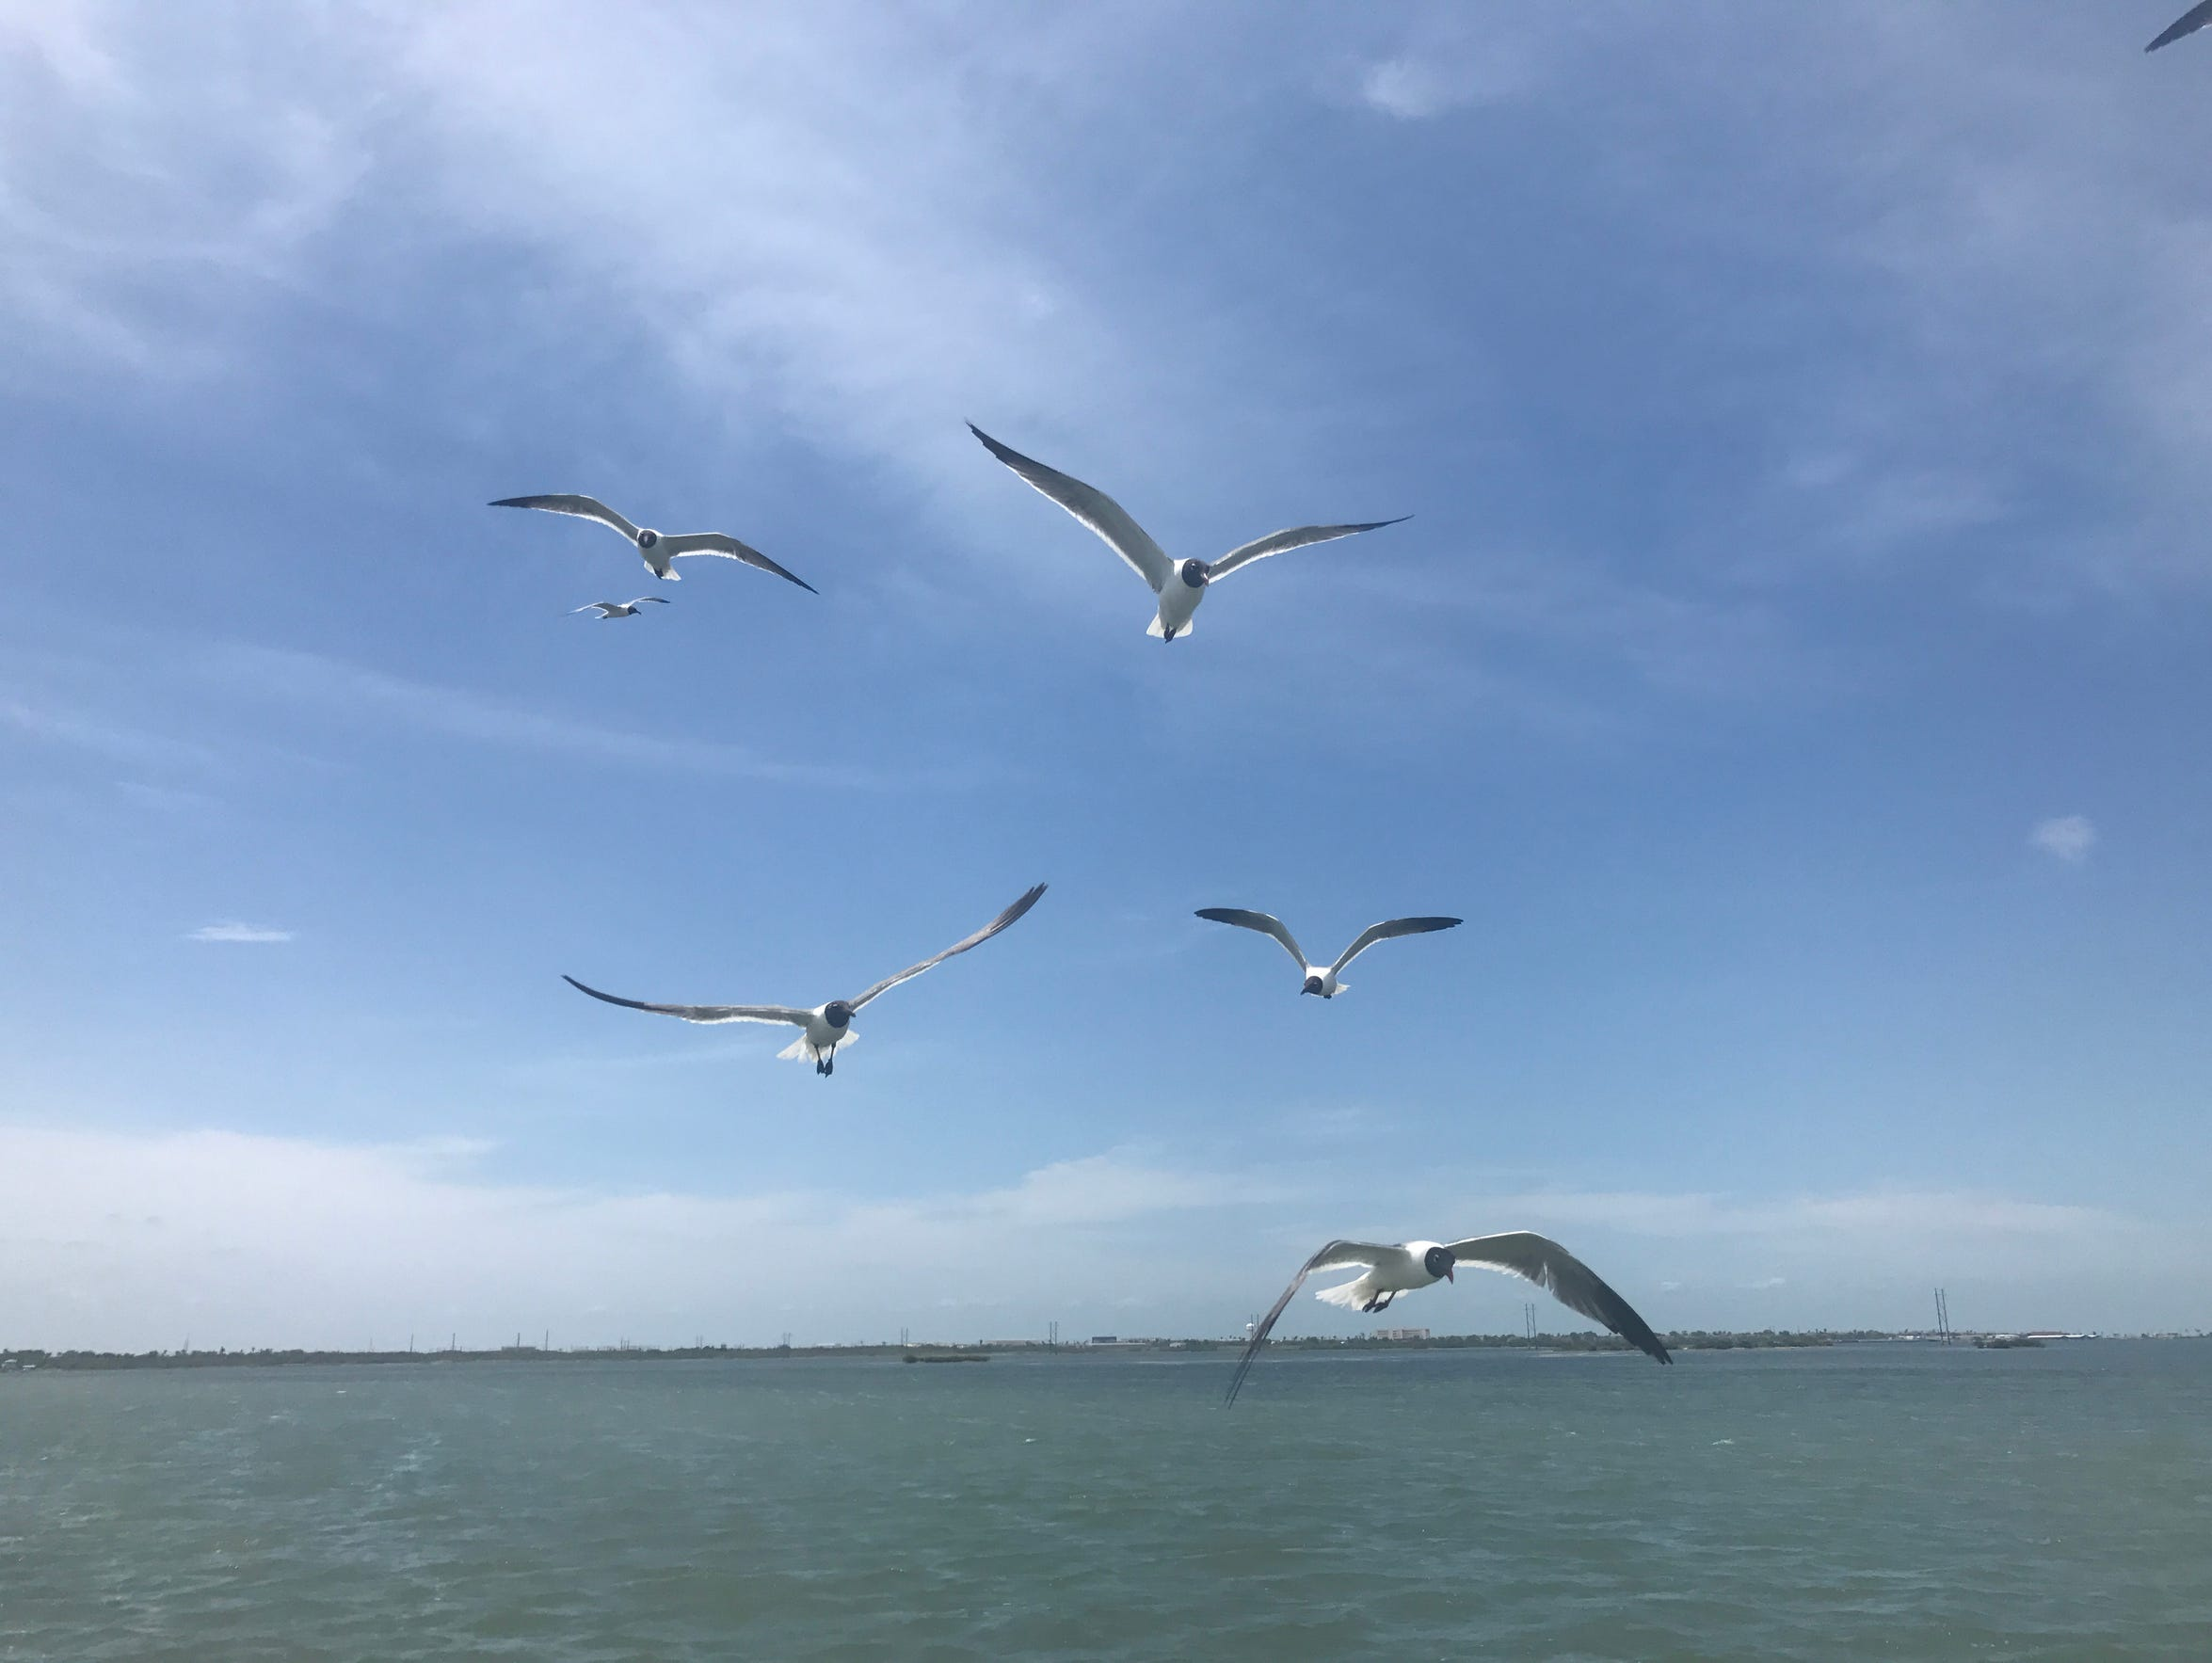 Gulls and terns have learned to follow boats with anglers